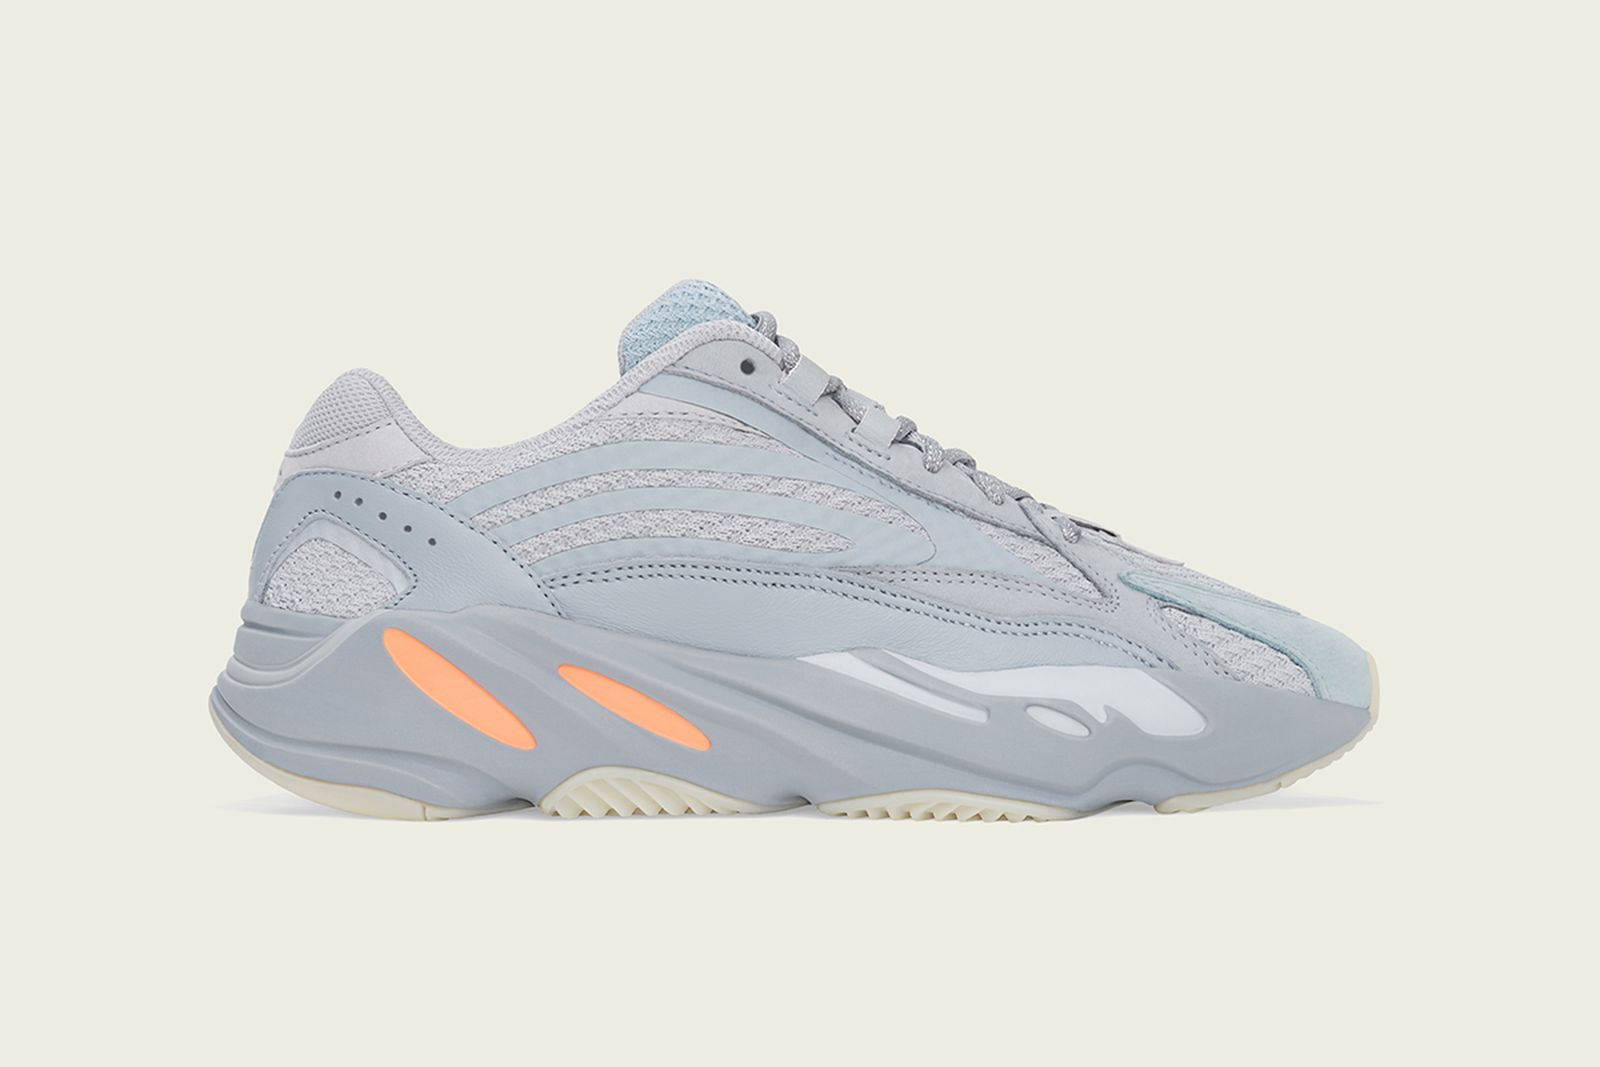 adidas yeezy boost 700 v2 inertia release date price Grailed StockX adidas Originals